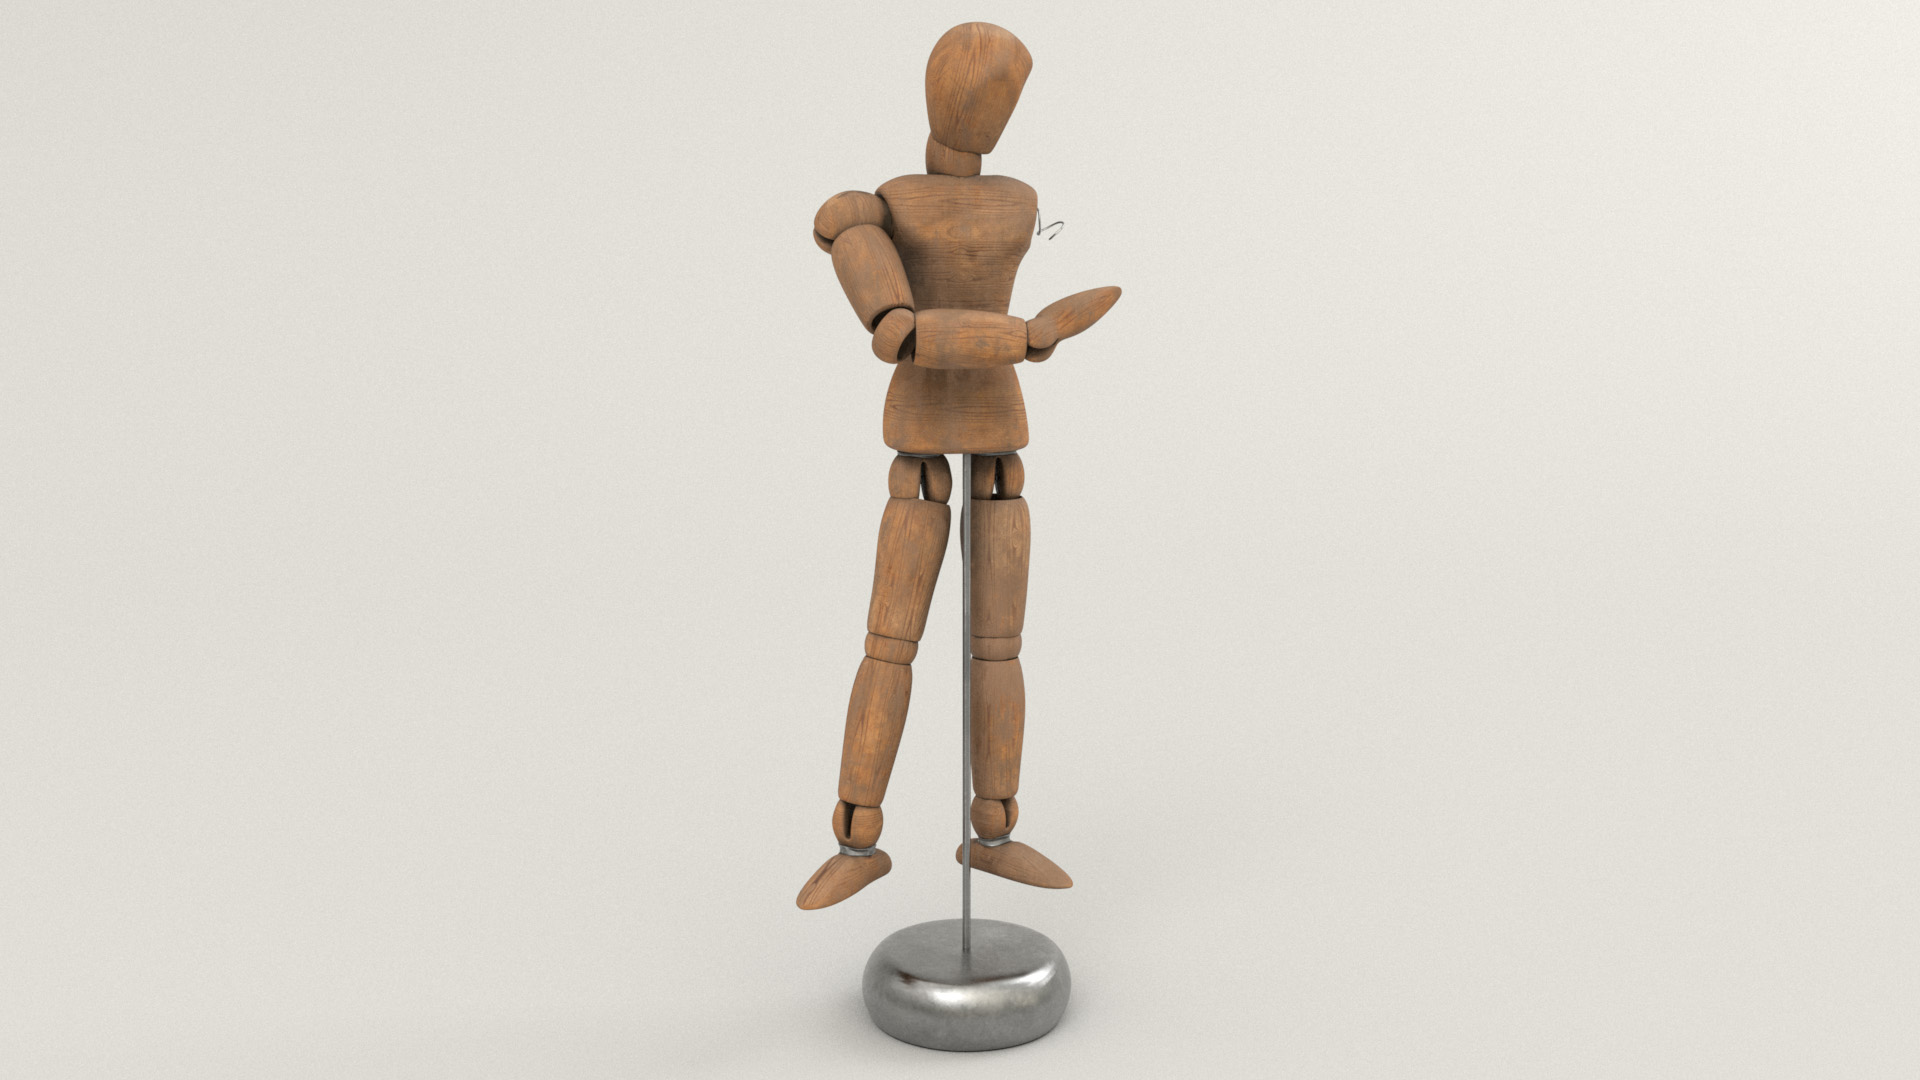 Figure 18: Mannequin prop made from wood and metal.